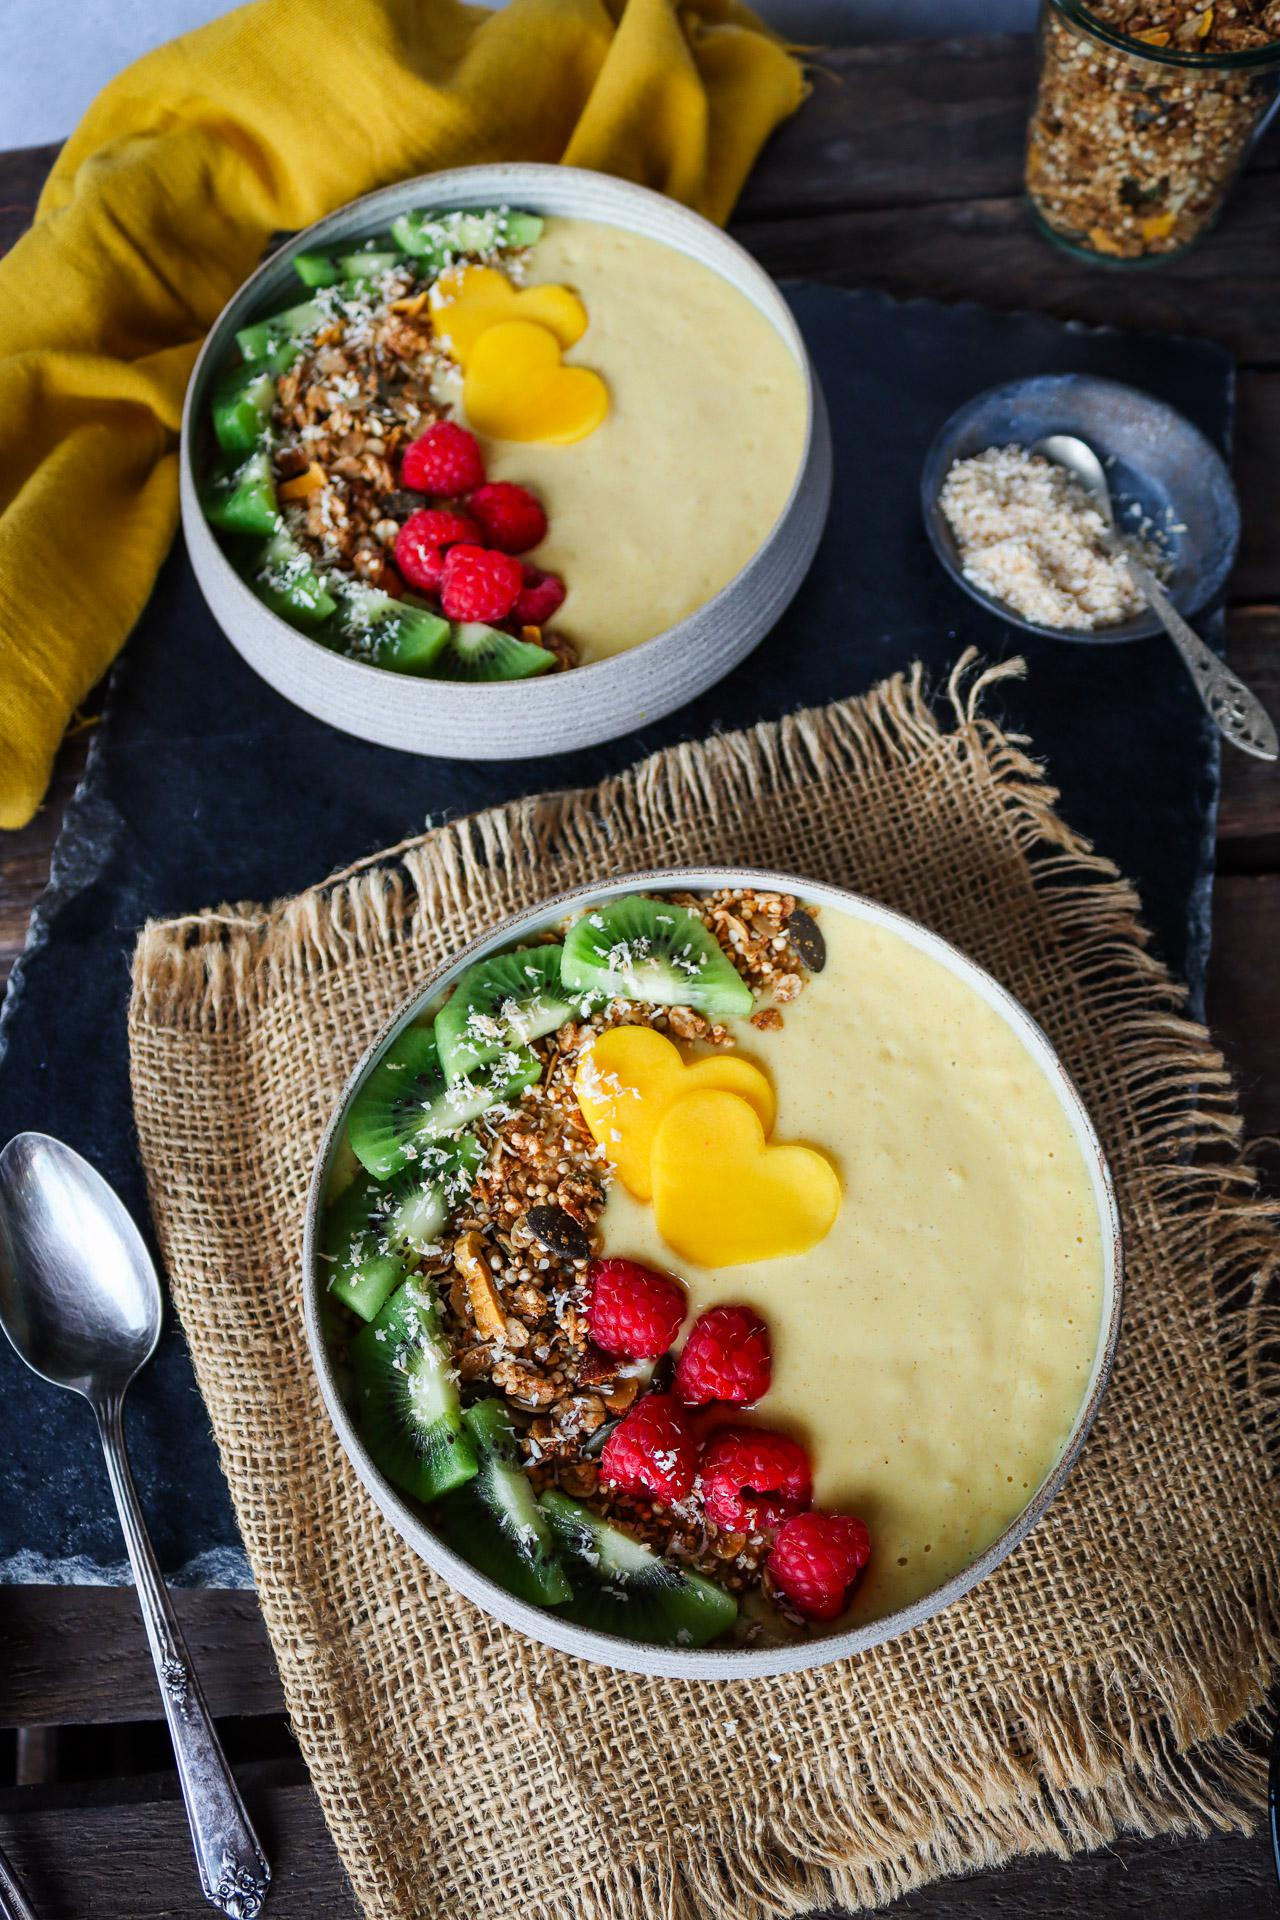 Main image of Sweet & Spicy Golden Smoothie Bowl